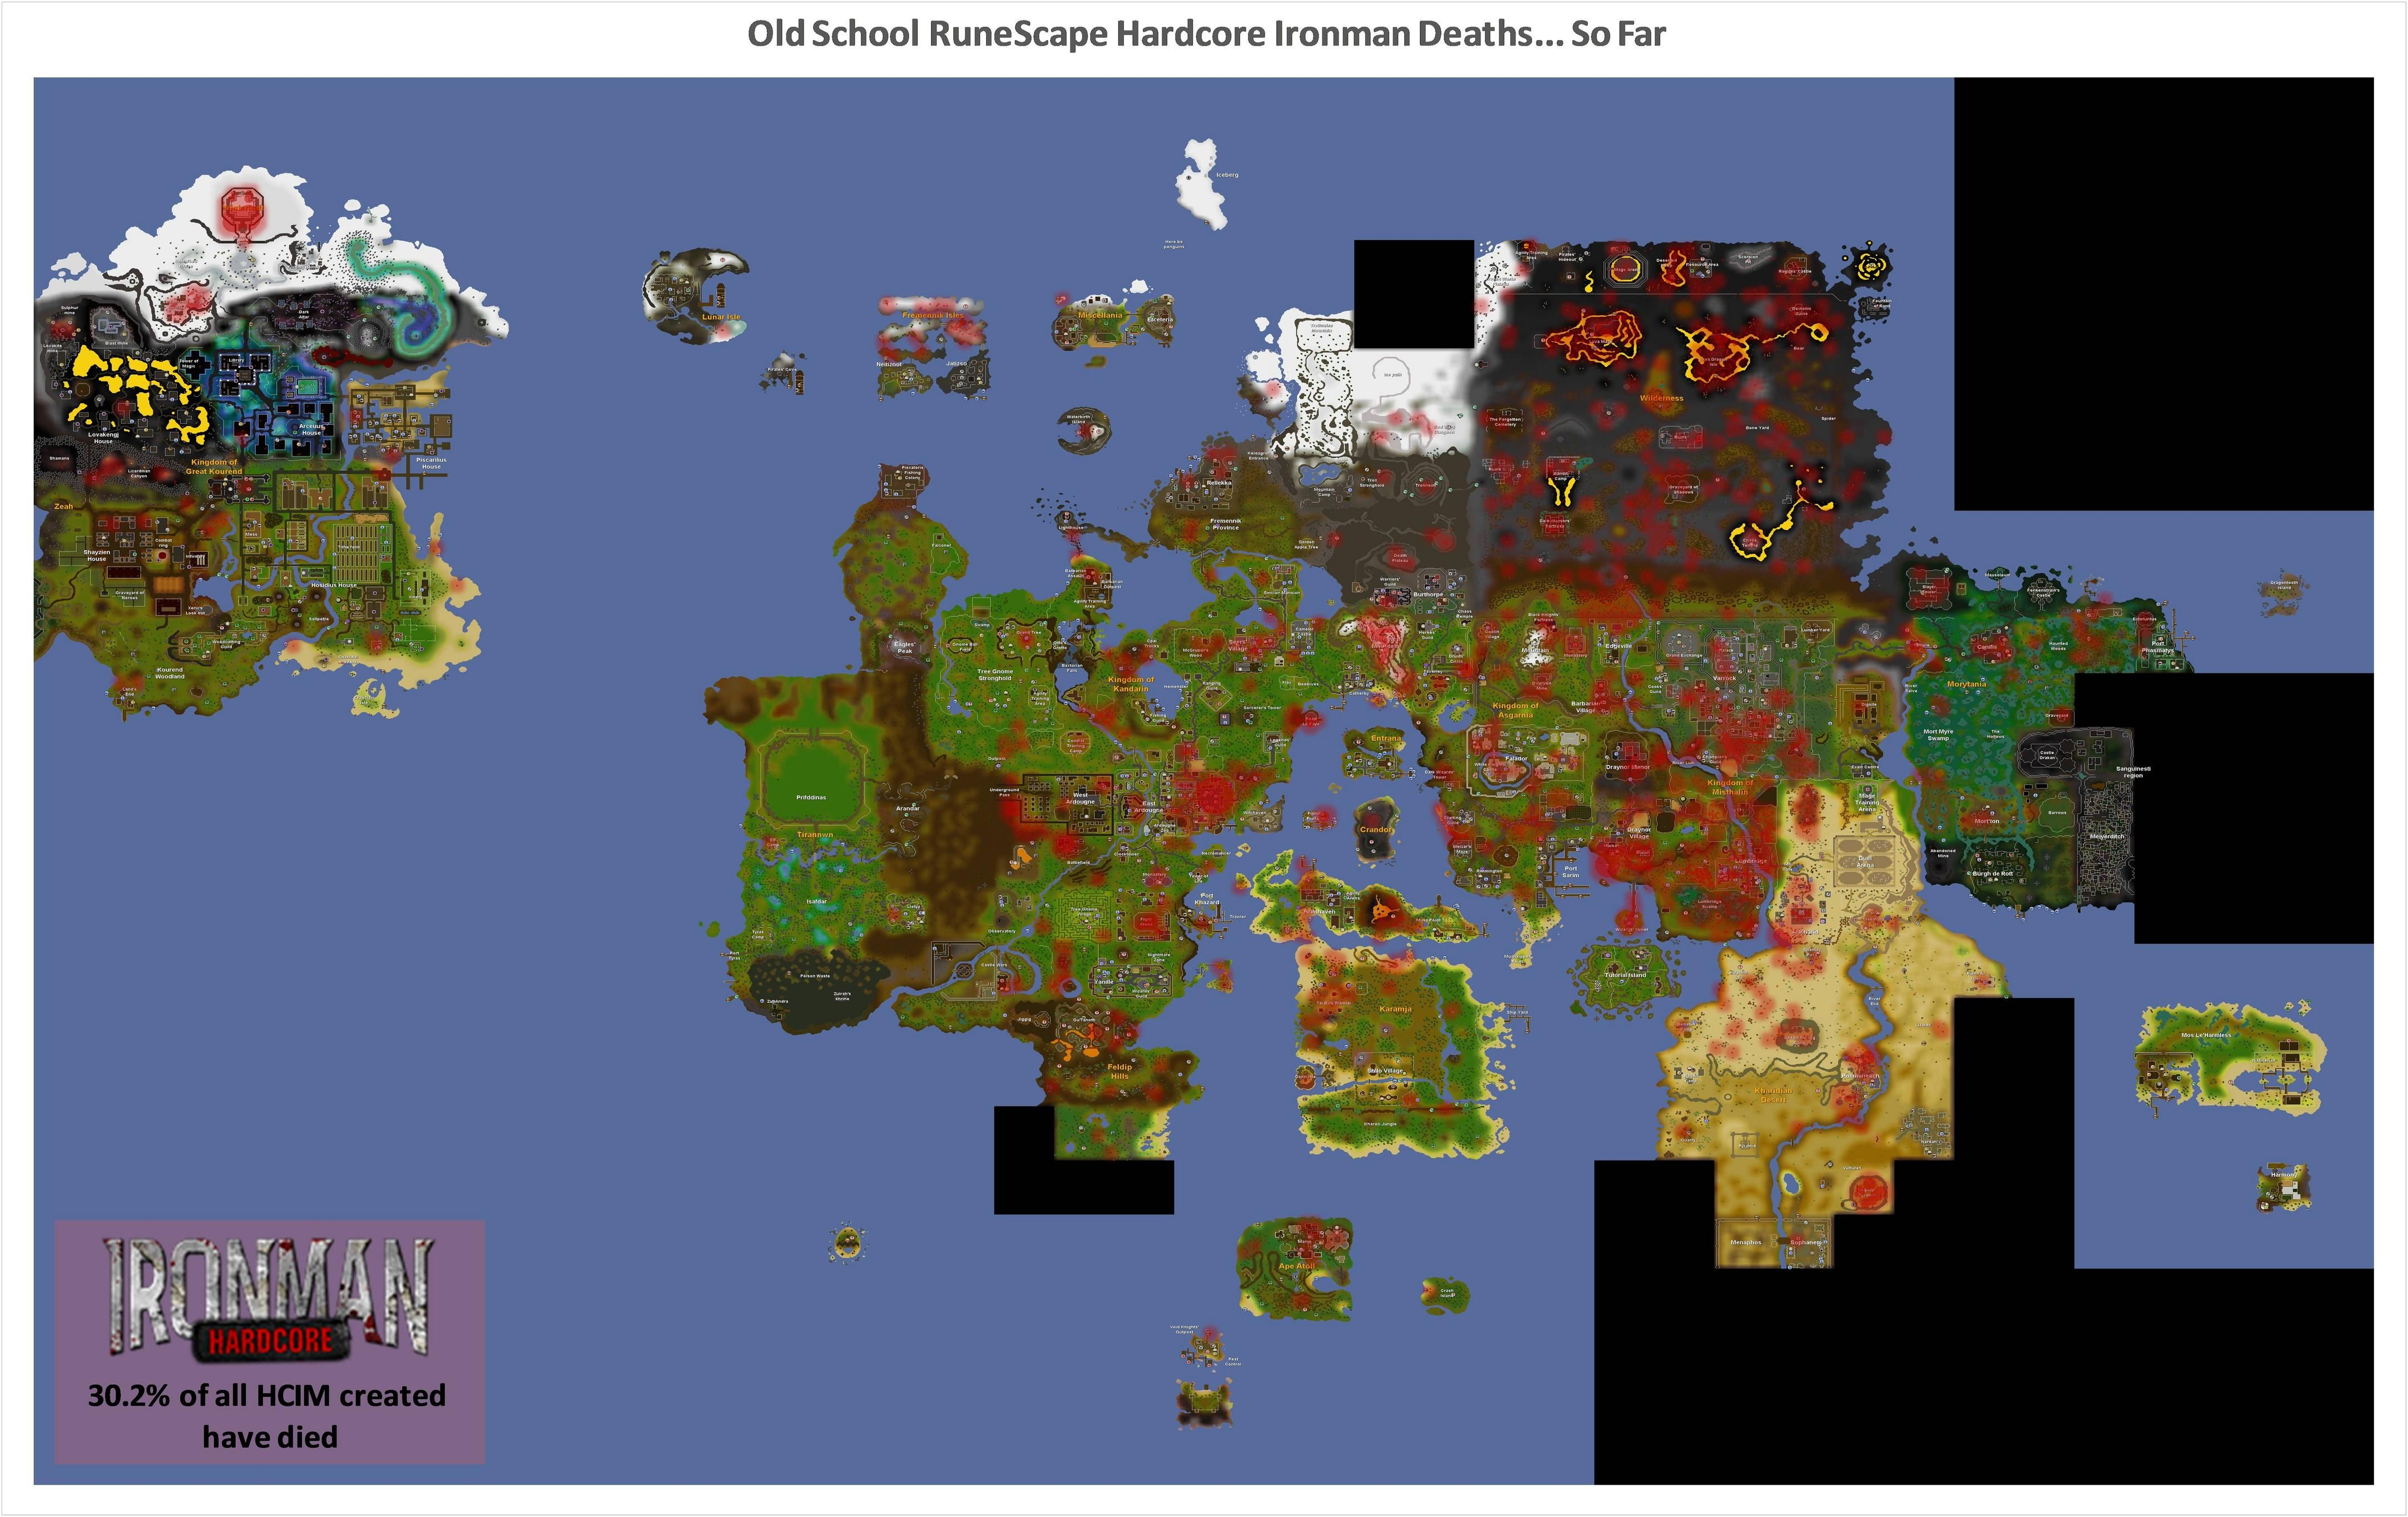 Really cool map of all the HCIM deaths in Old School